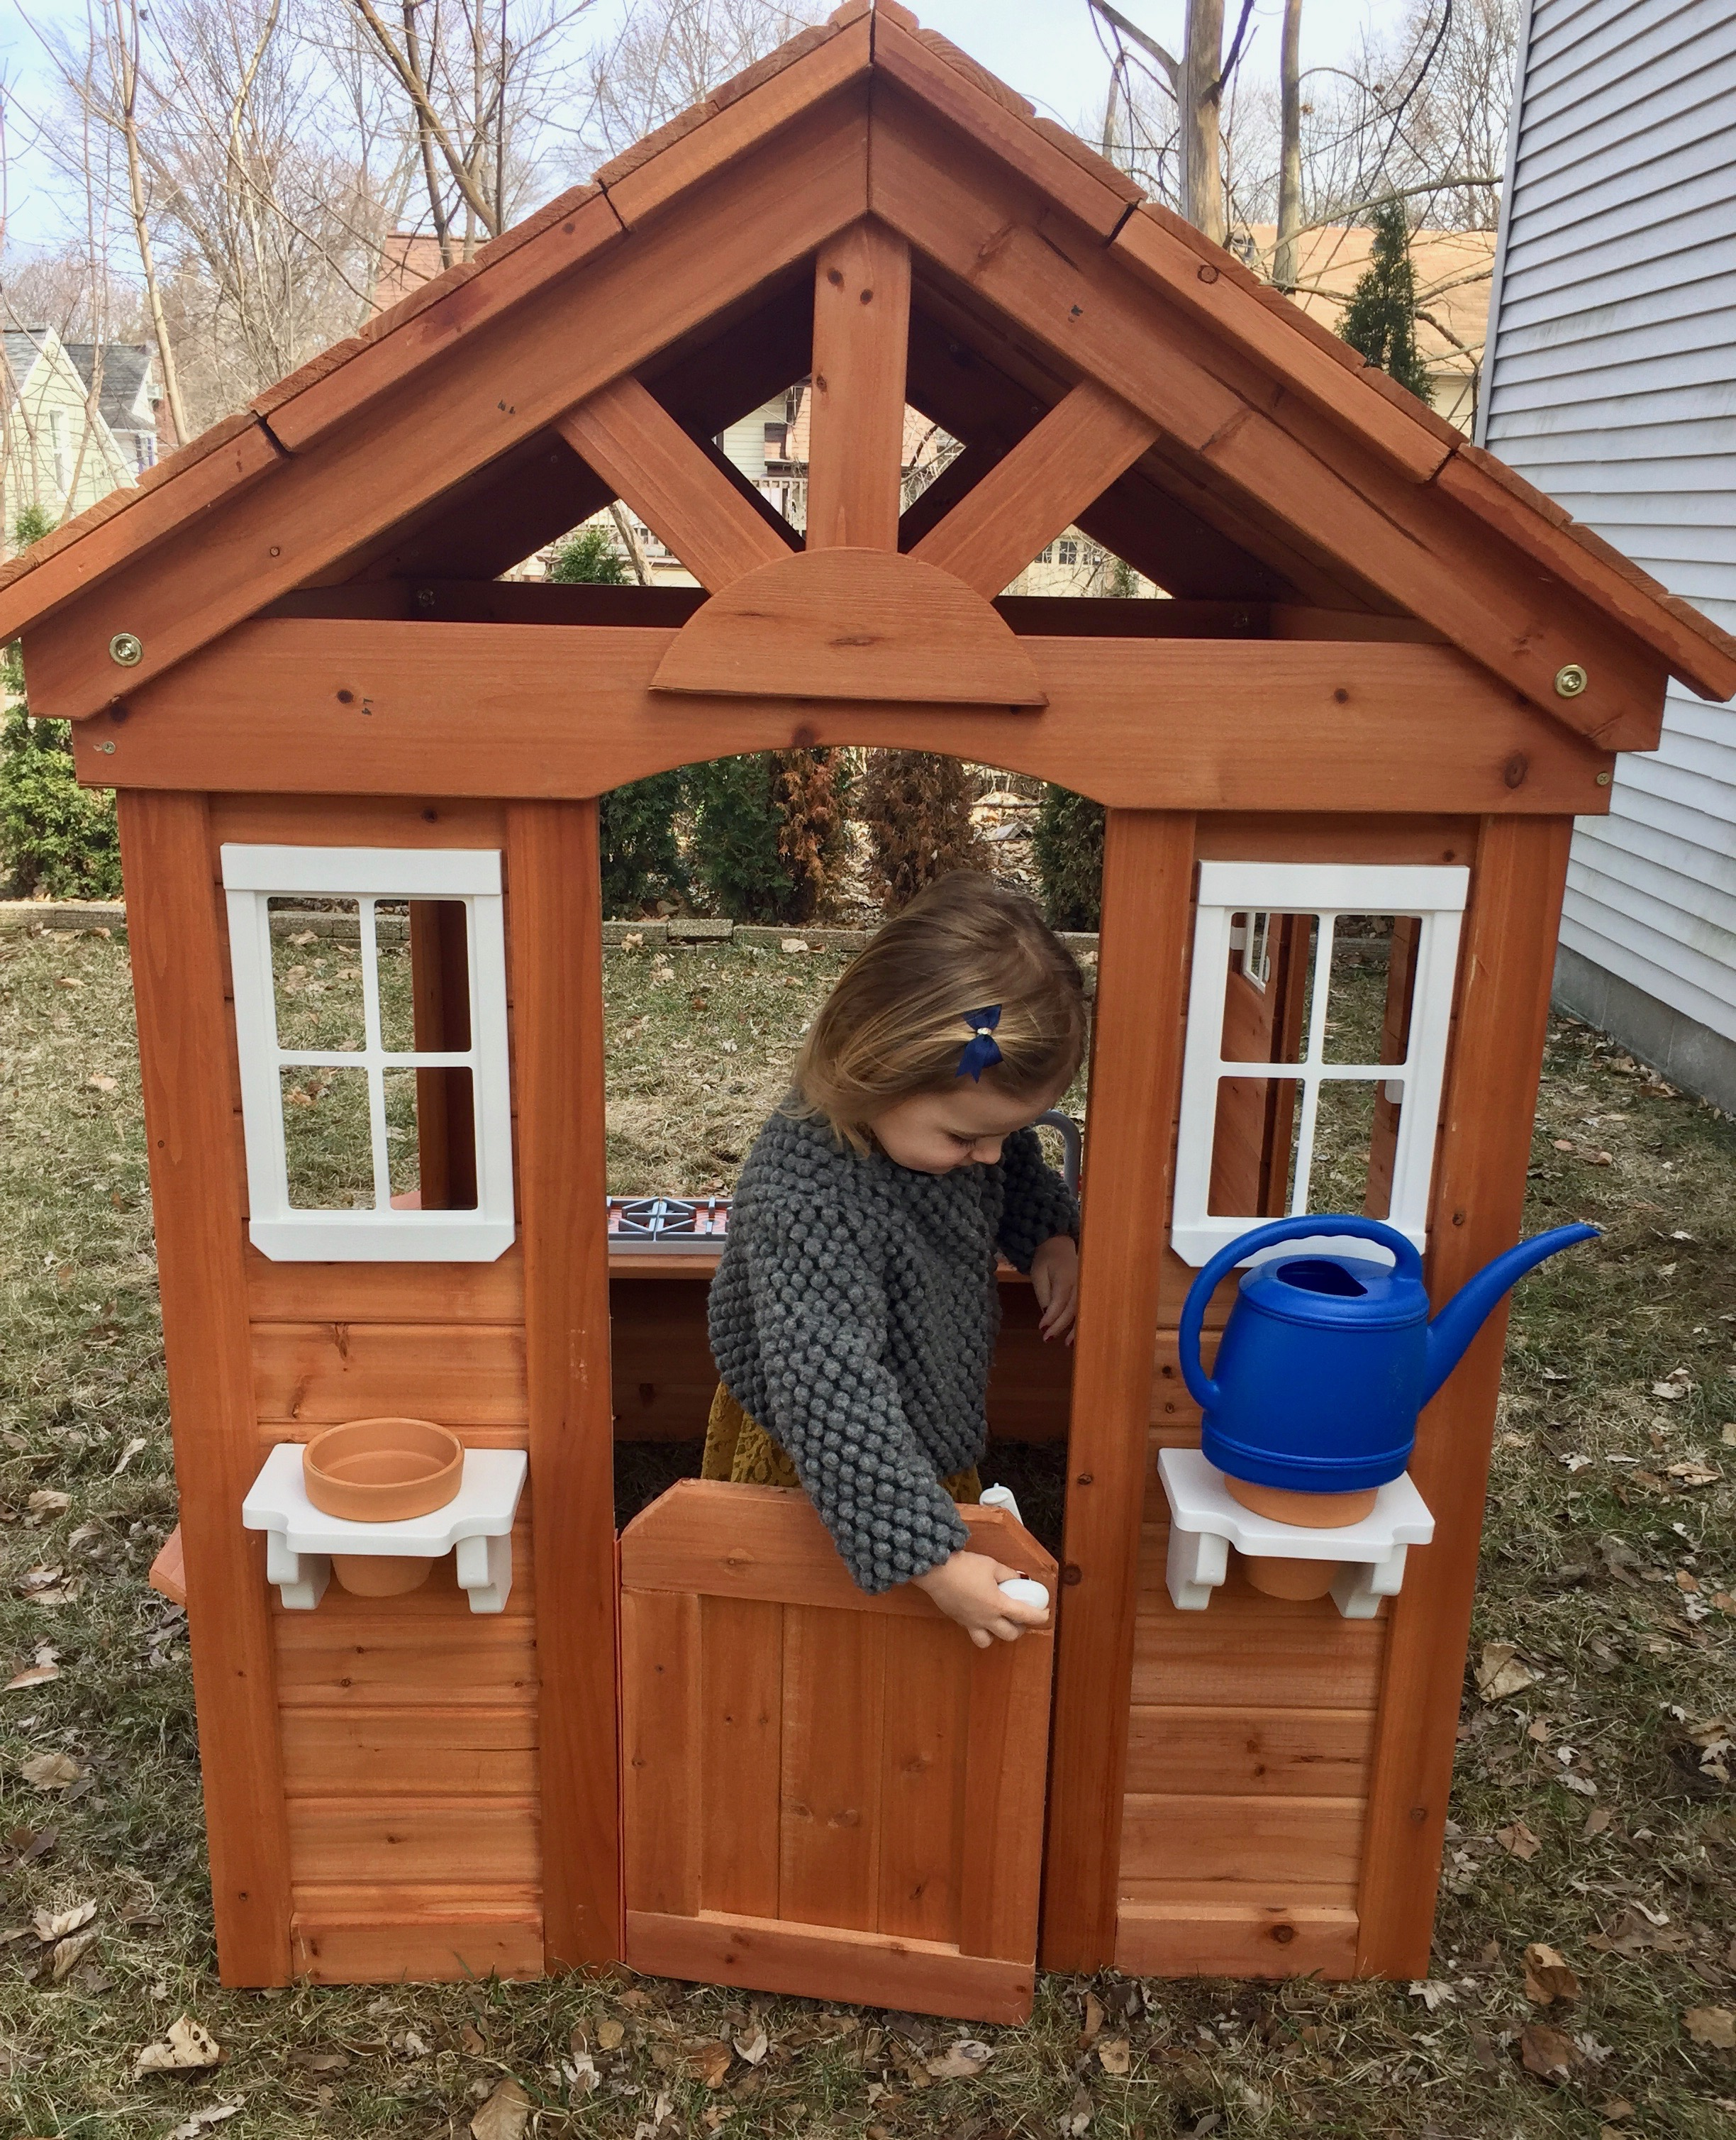 Wooden Playhouse.jpg